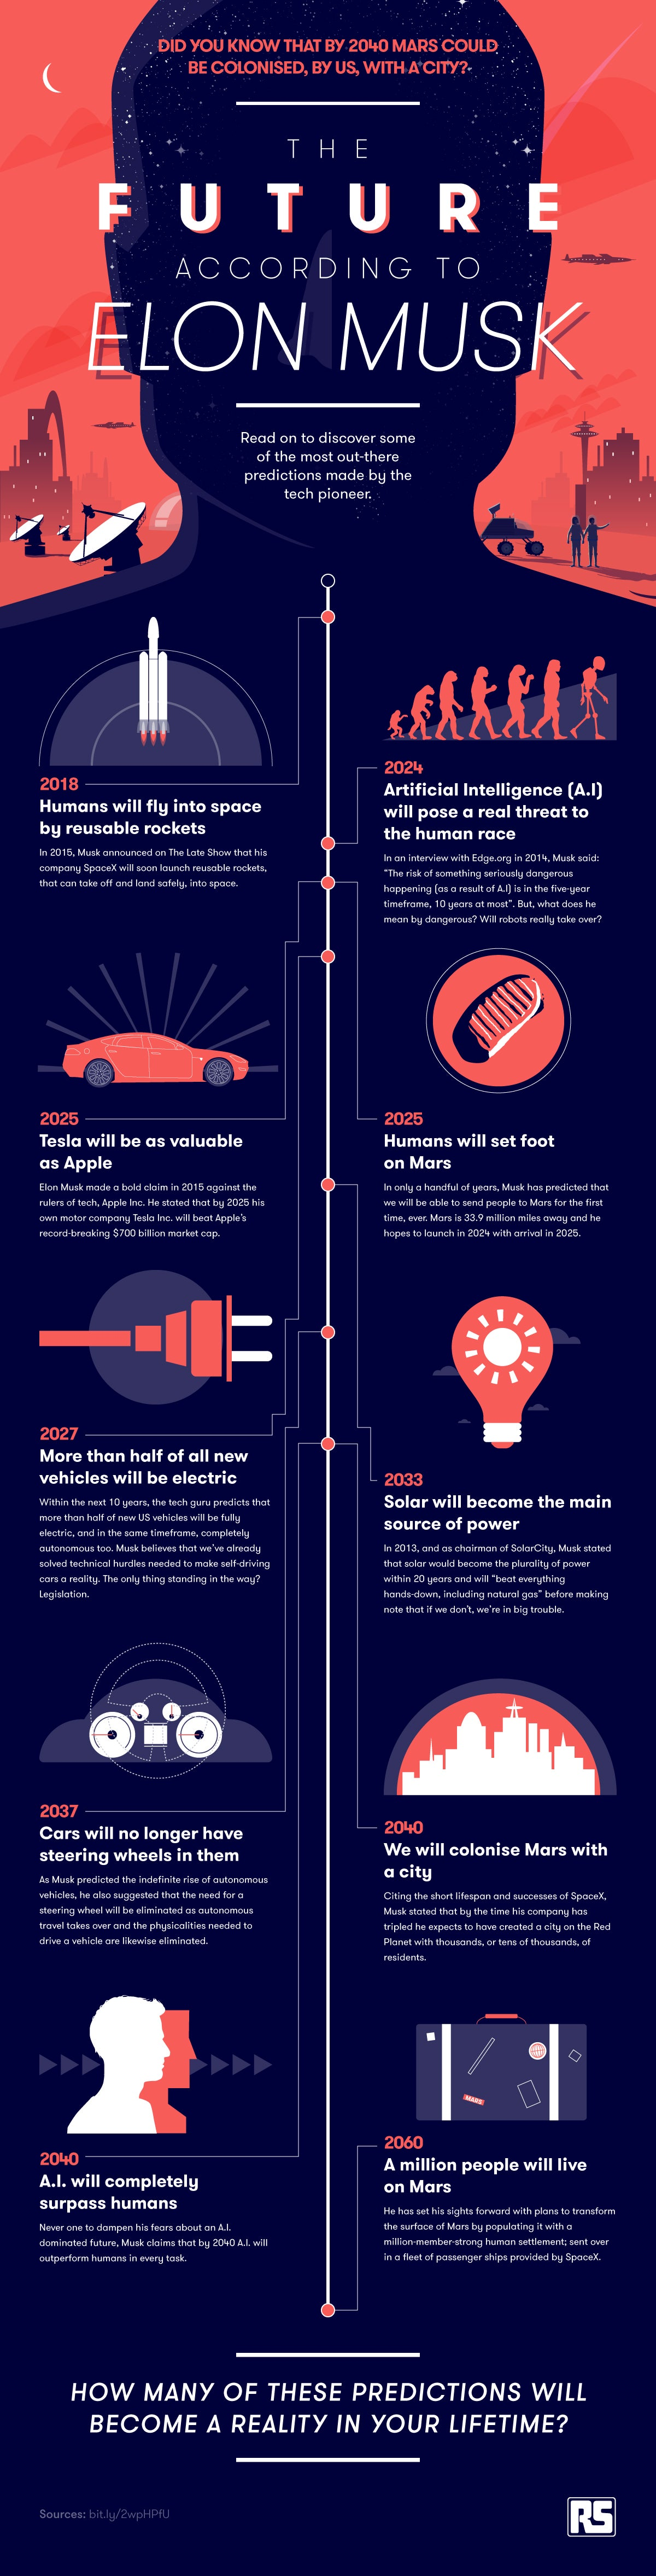 https://assets.entrepreneur.com/images/misc/1507828341_future-according-to-elon-musk-infographic.jpg